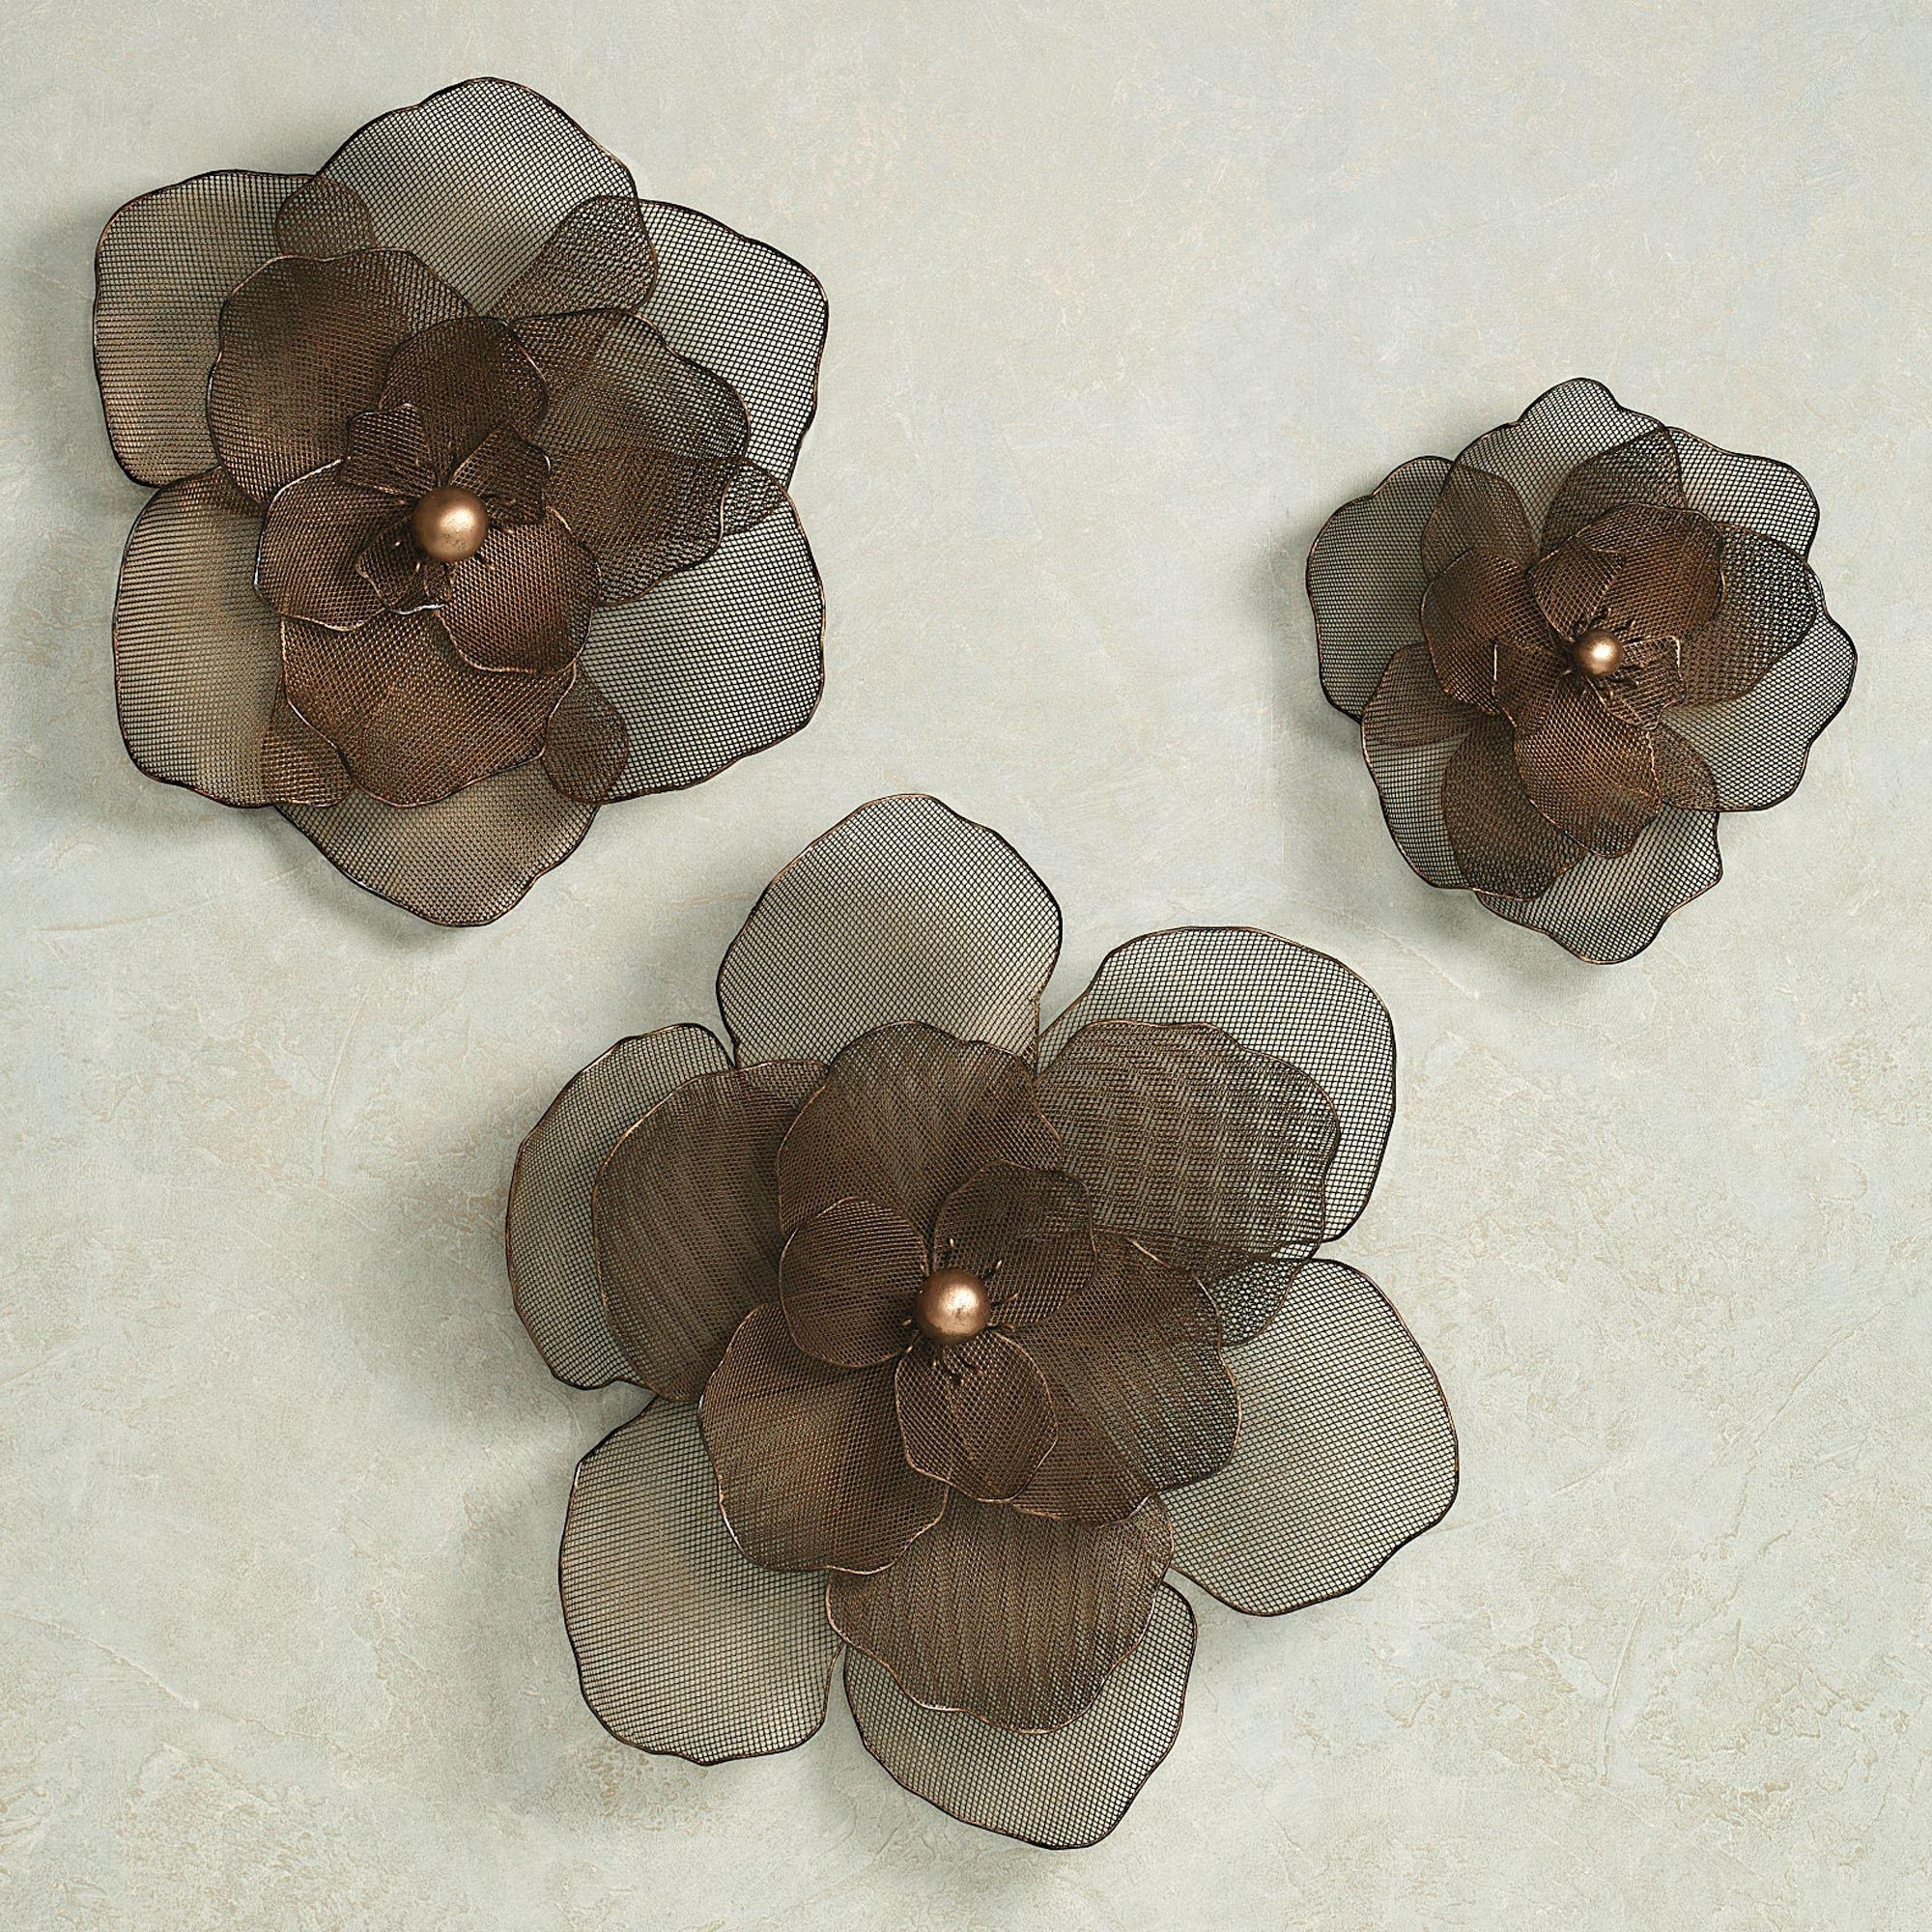 Flower Metal Wall Art Awesome Wall Art Decor For Bathroom Wall Art For Metal Wall Art For Bathroom (View 17 of 20)